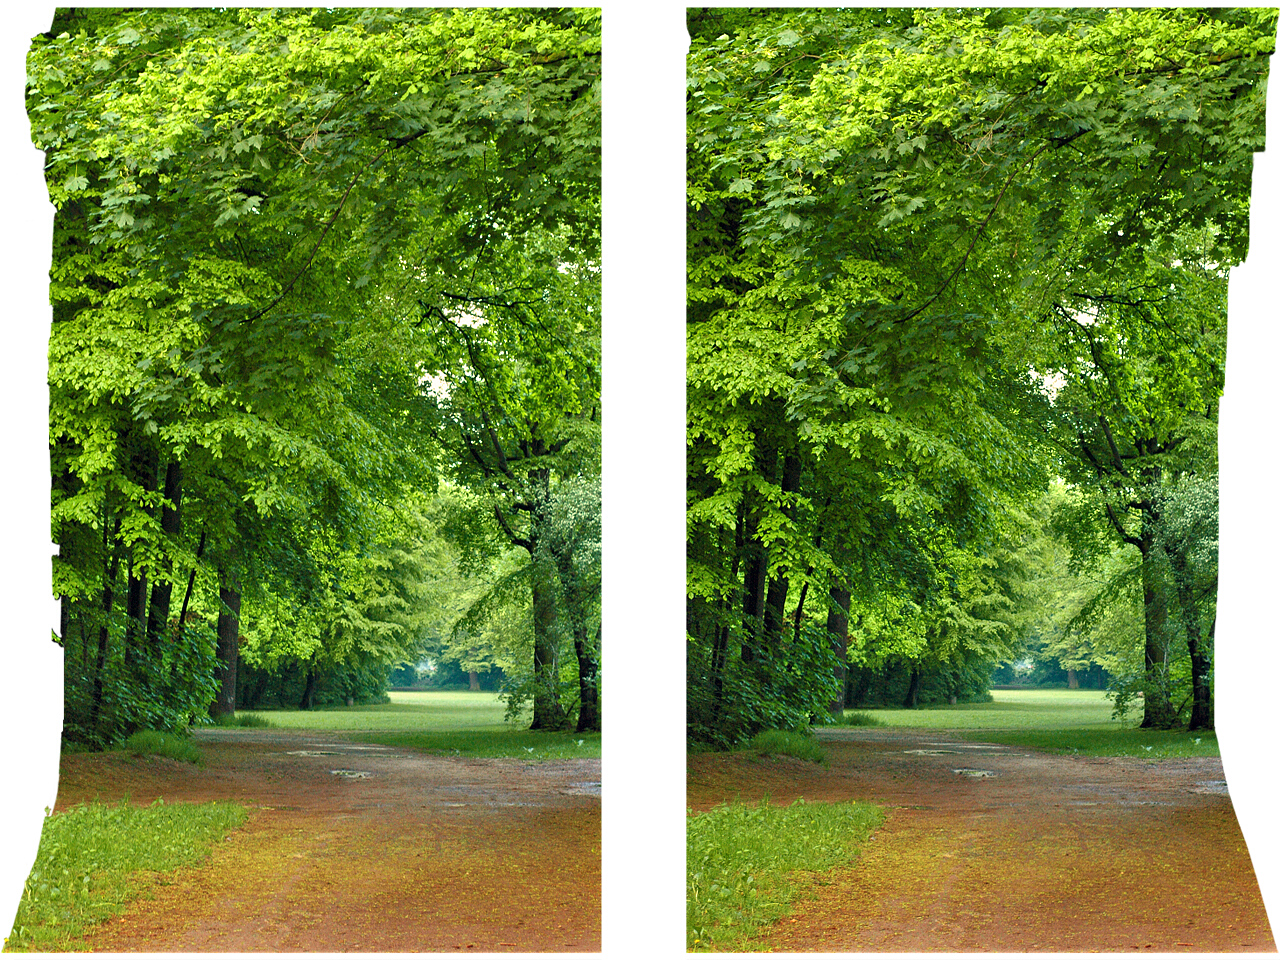 Airtight frame iii green world stereoscopic cross eye 3d